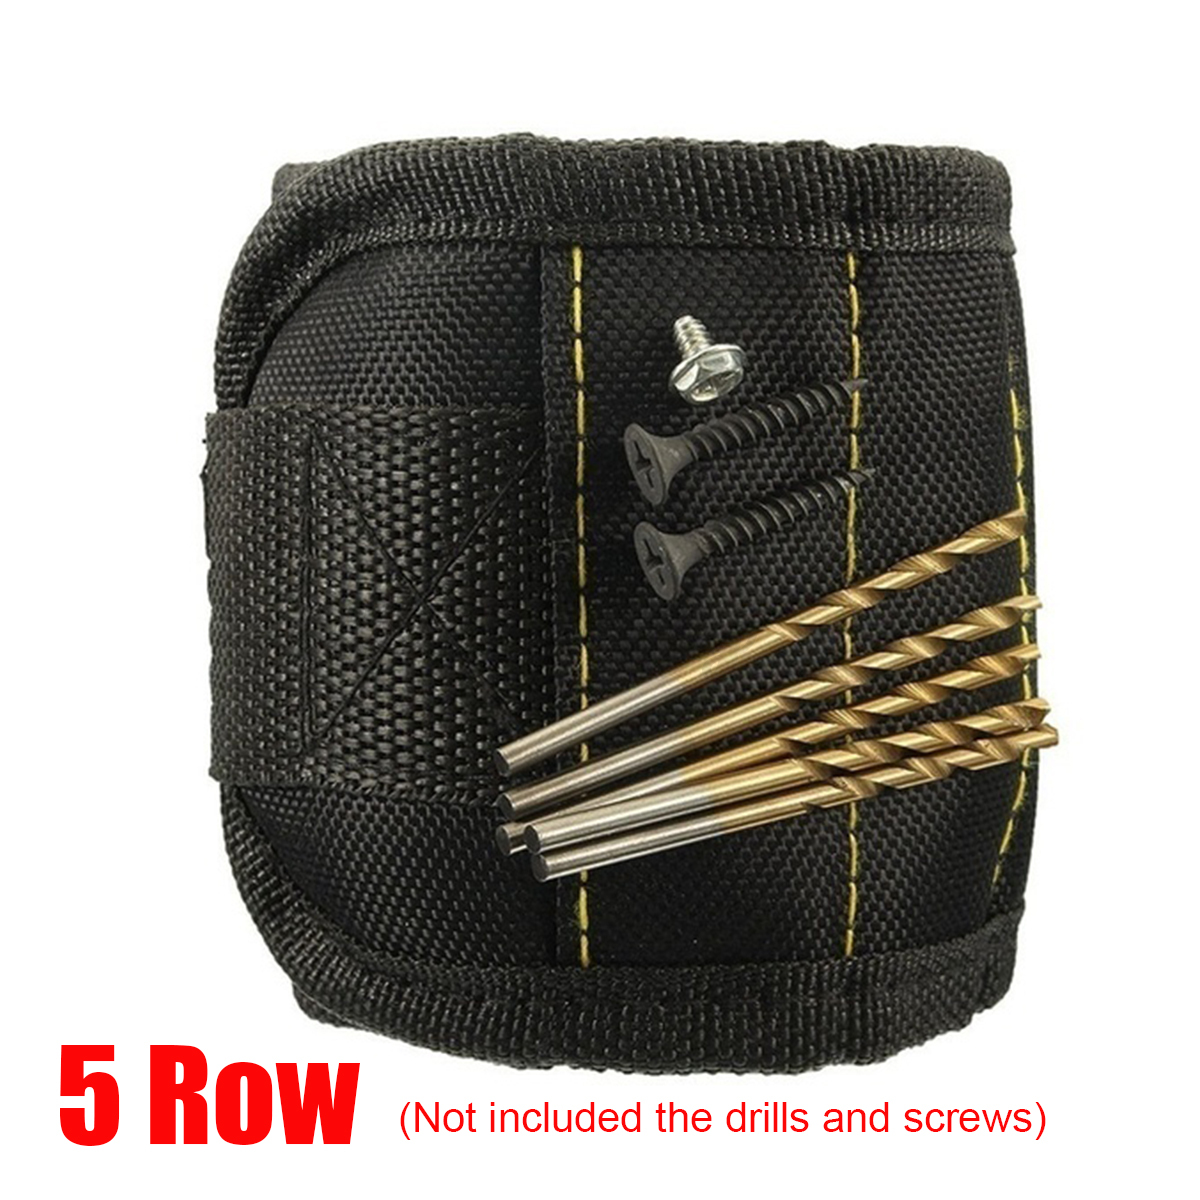 3-5Row-Magnetic-Wrist-Band-Magnet-Strap-Tool-Holder-Belt-Screws-Bolts-Nuts-Nails thumbnail 14